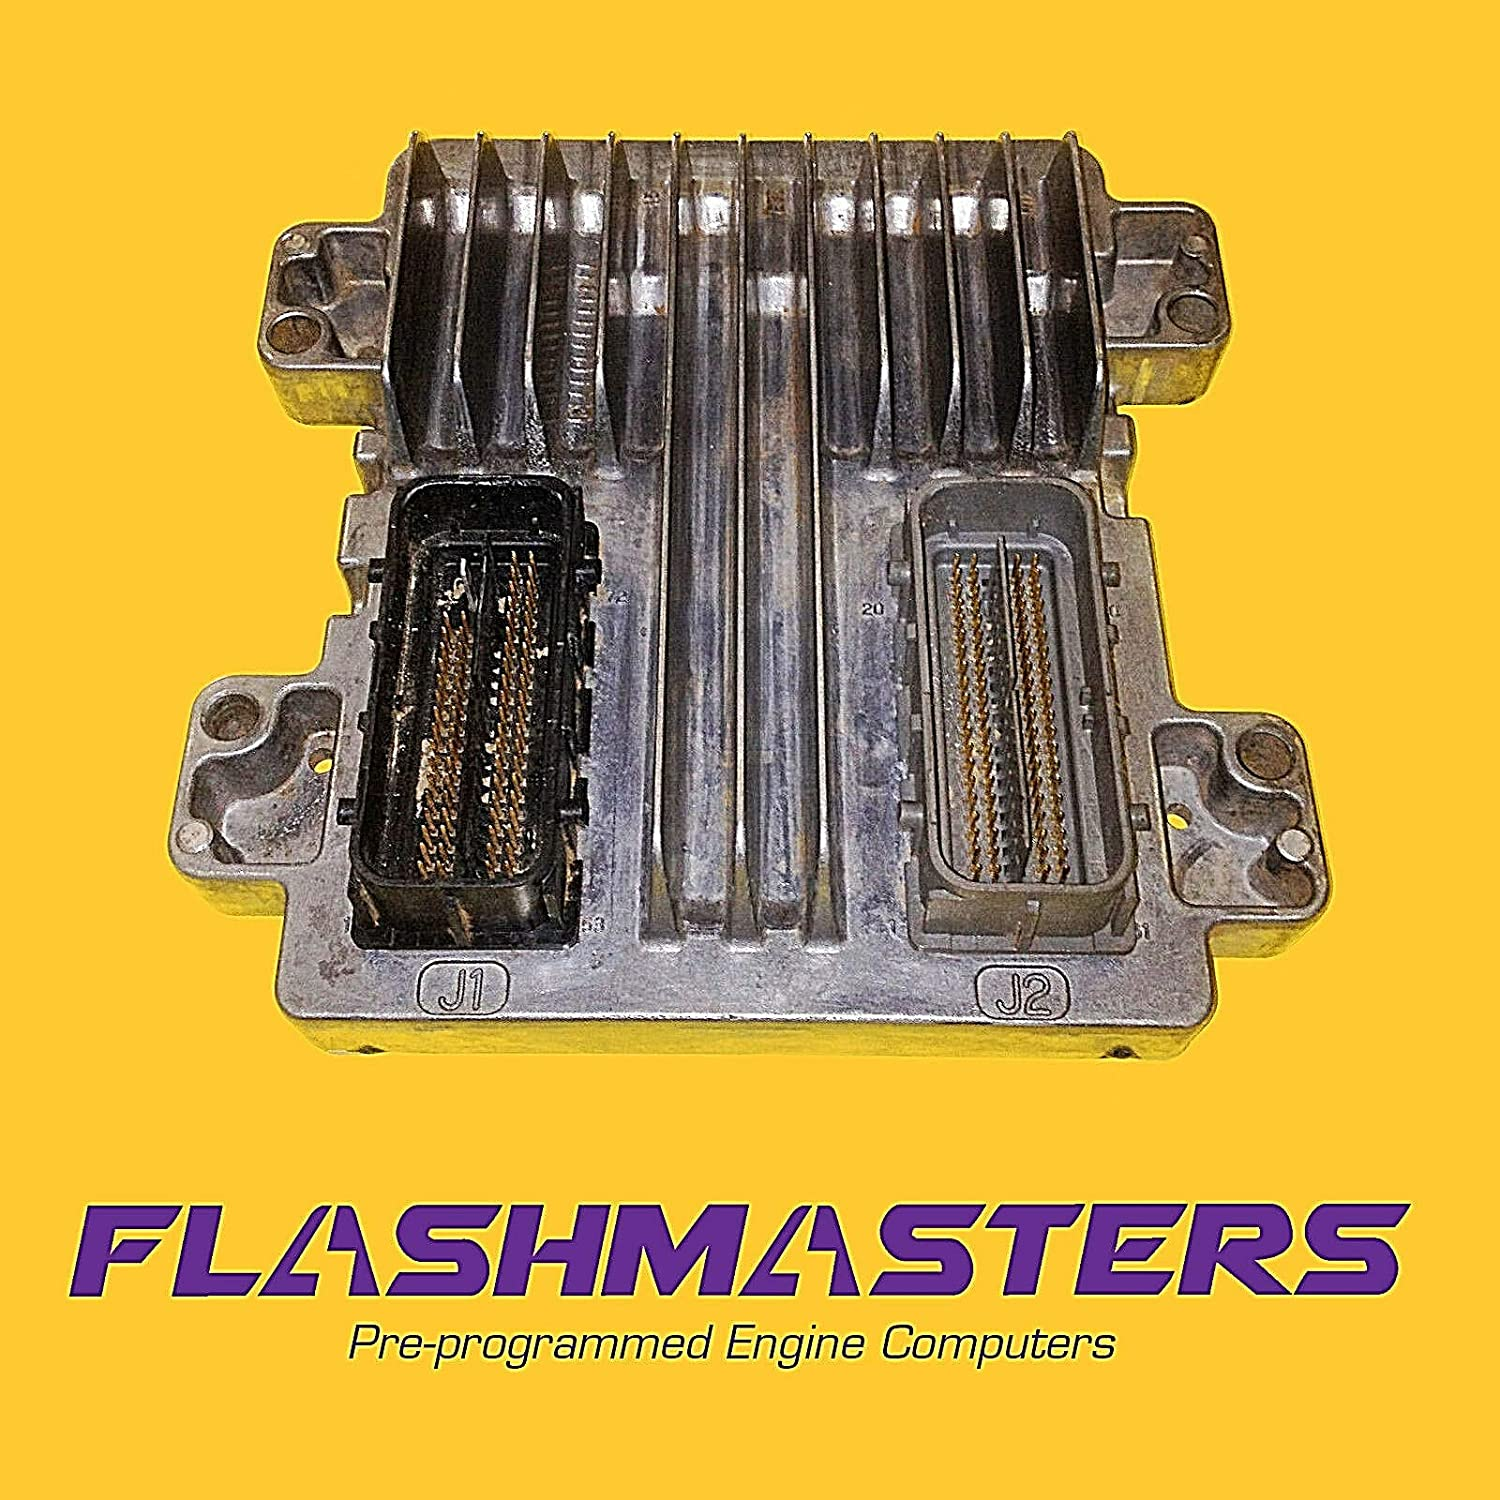 Flashmasters 2008 Escalade Engine Gifts Computer cheap 12612384